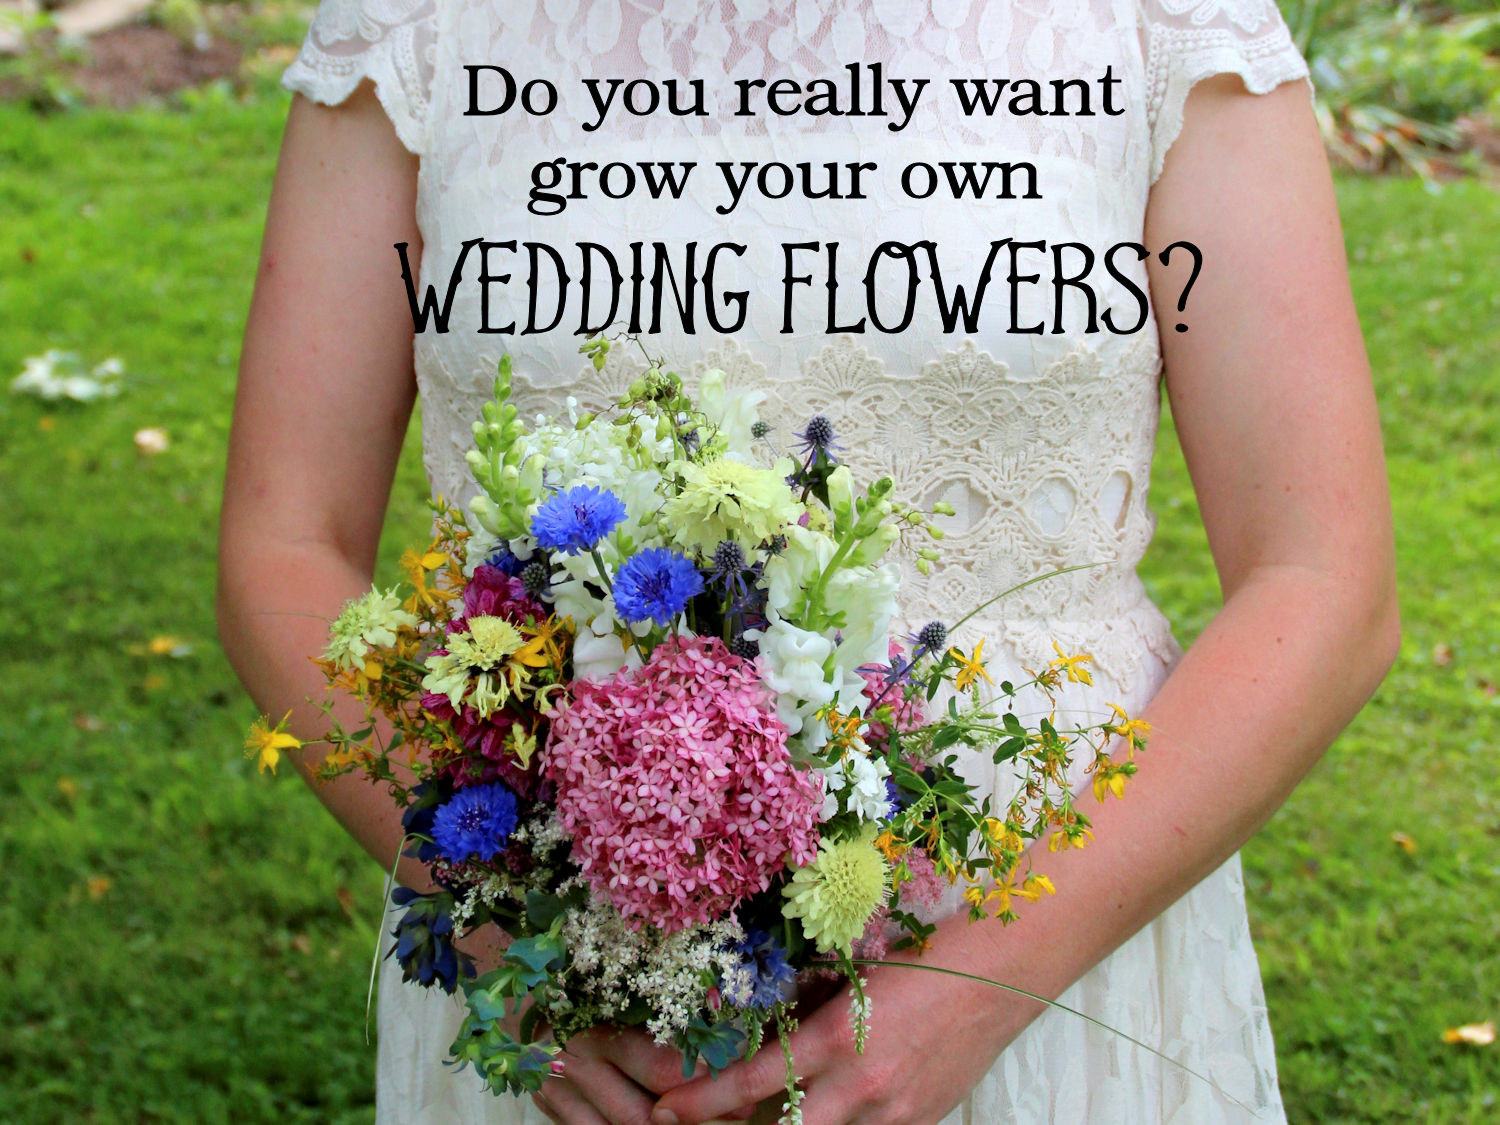 do you really want to grow your own wedding flowers